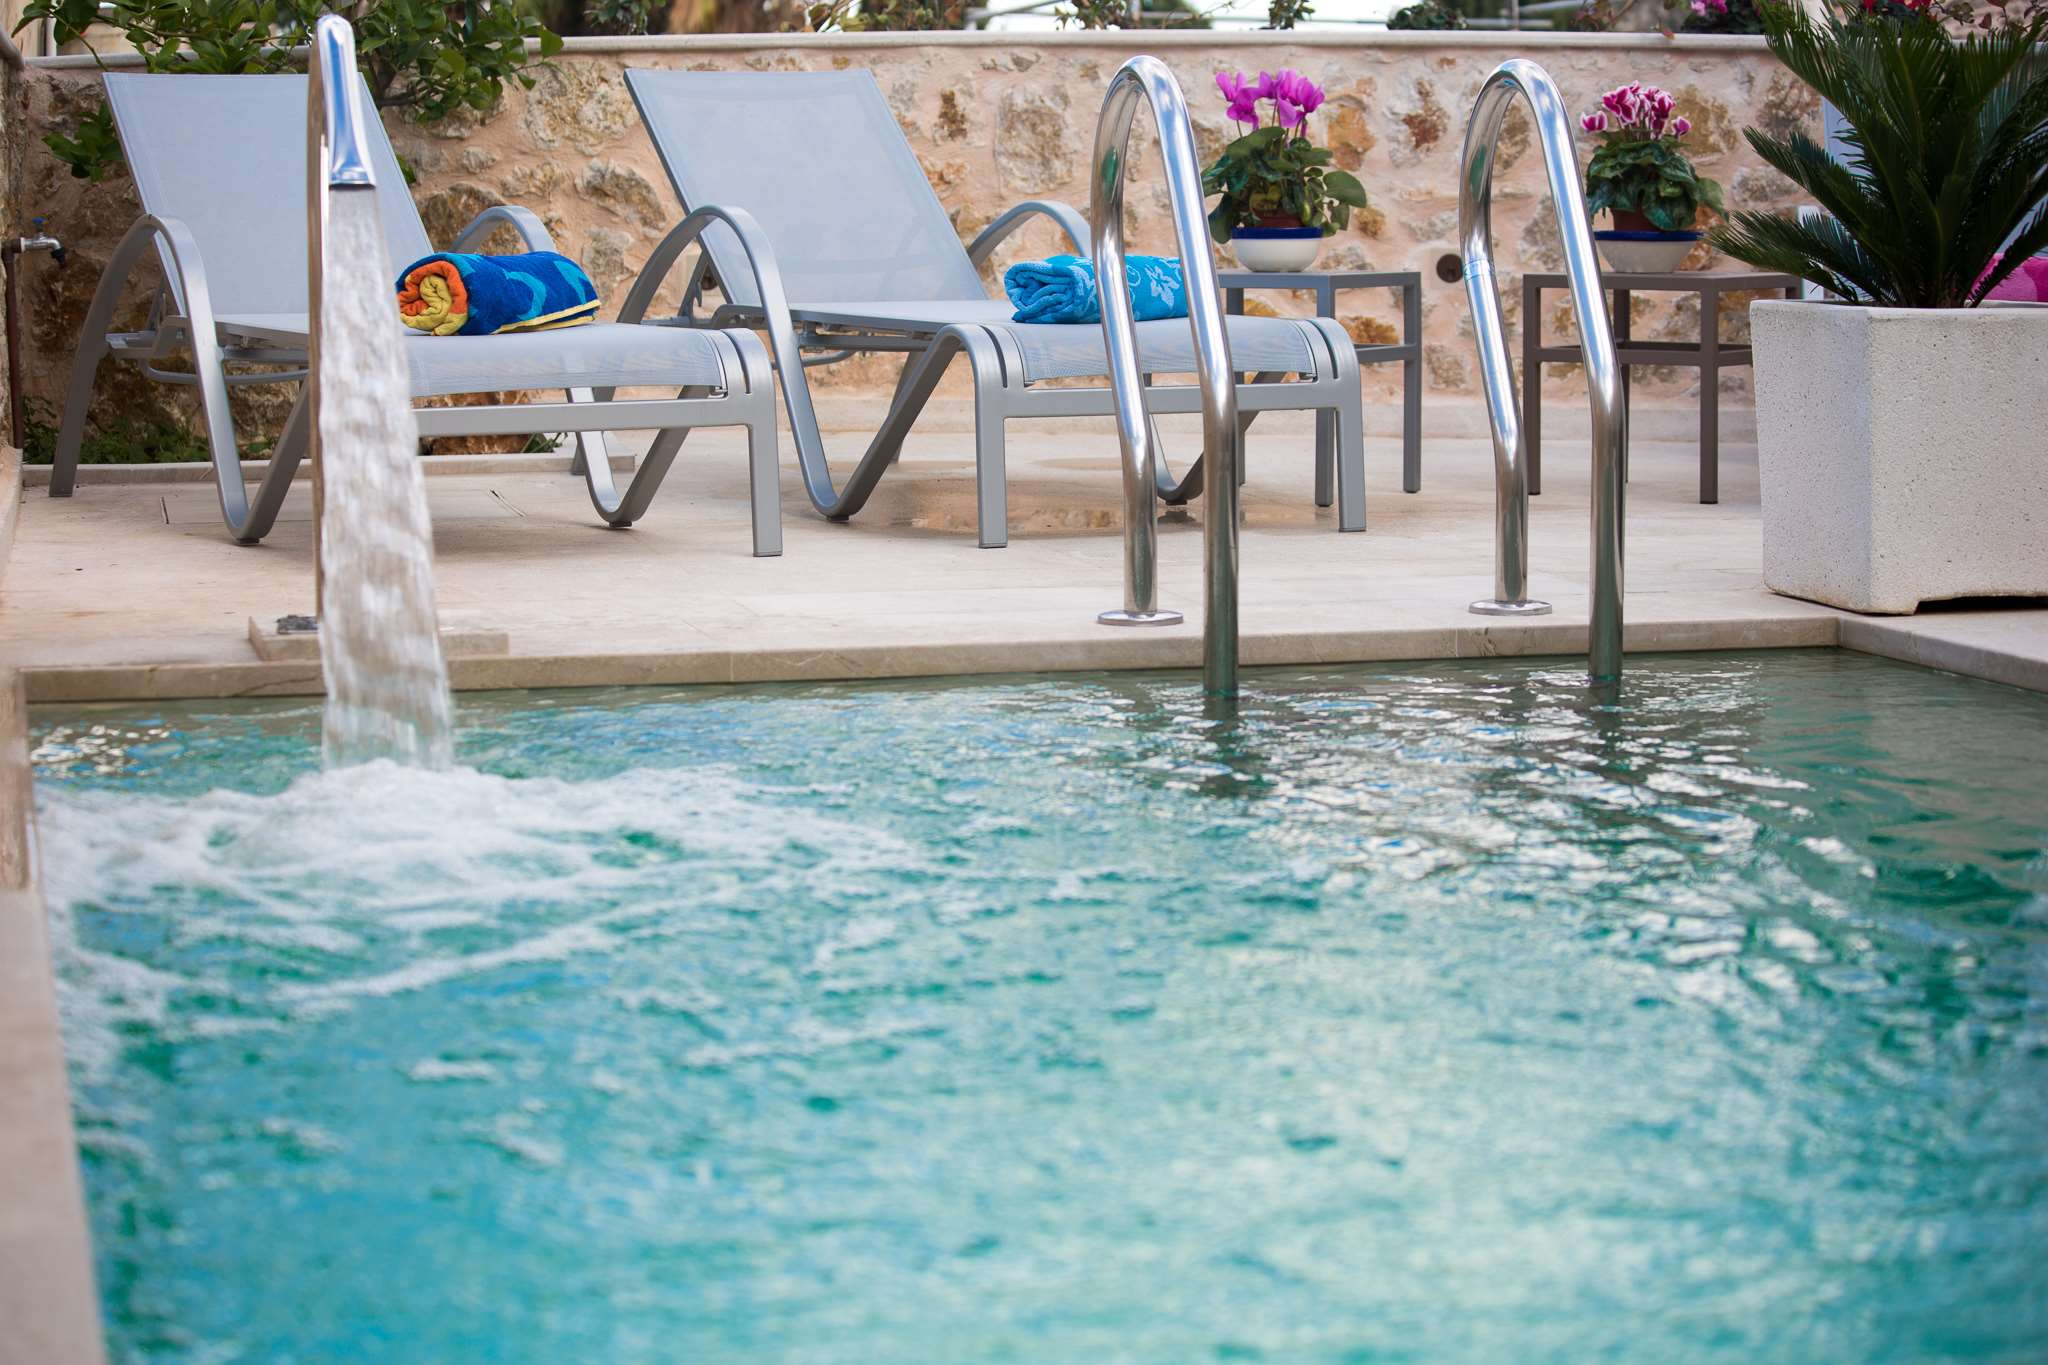 Domus lleo is a holiday town house in pollença mallorca spain